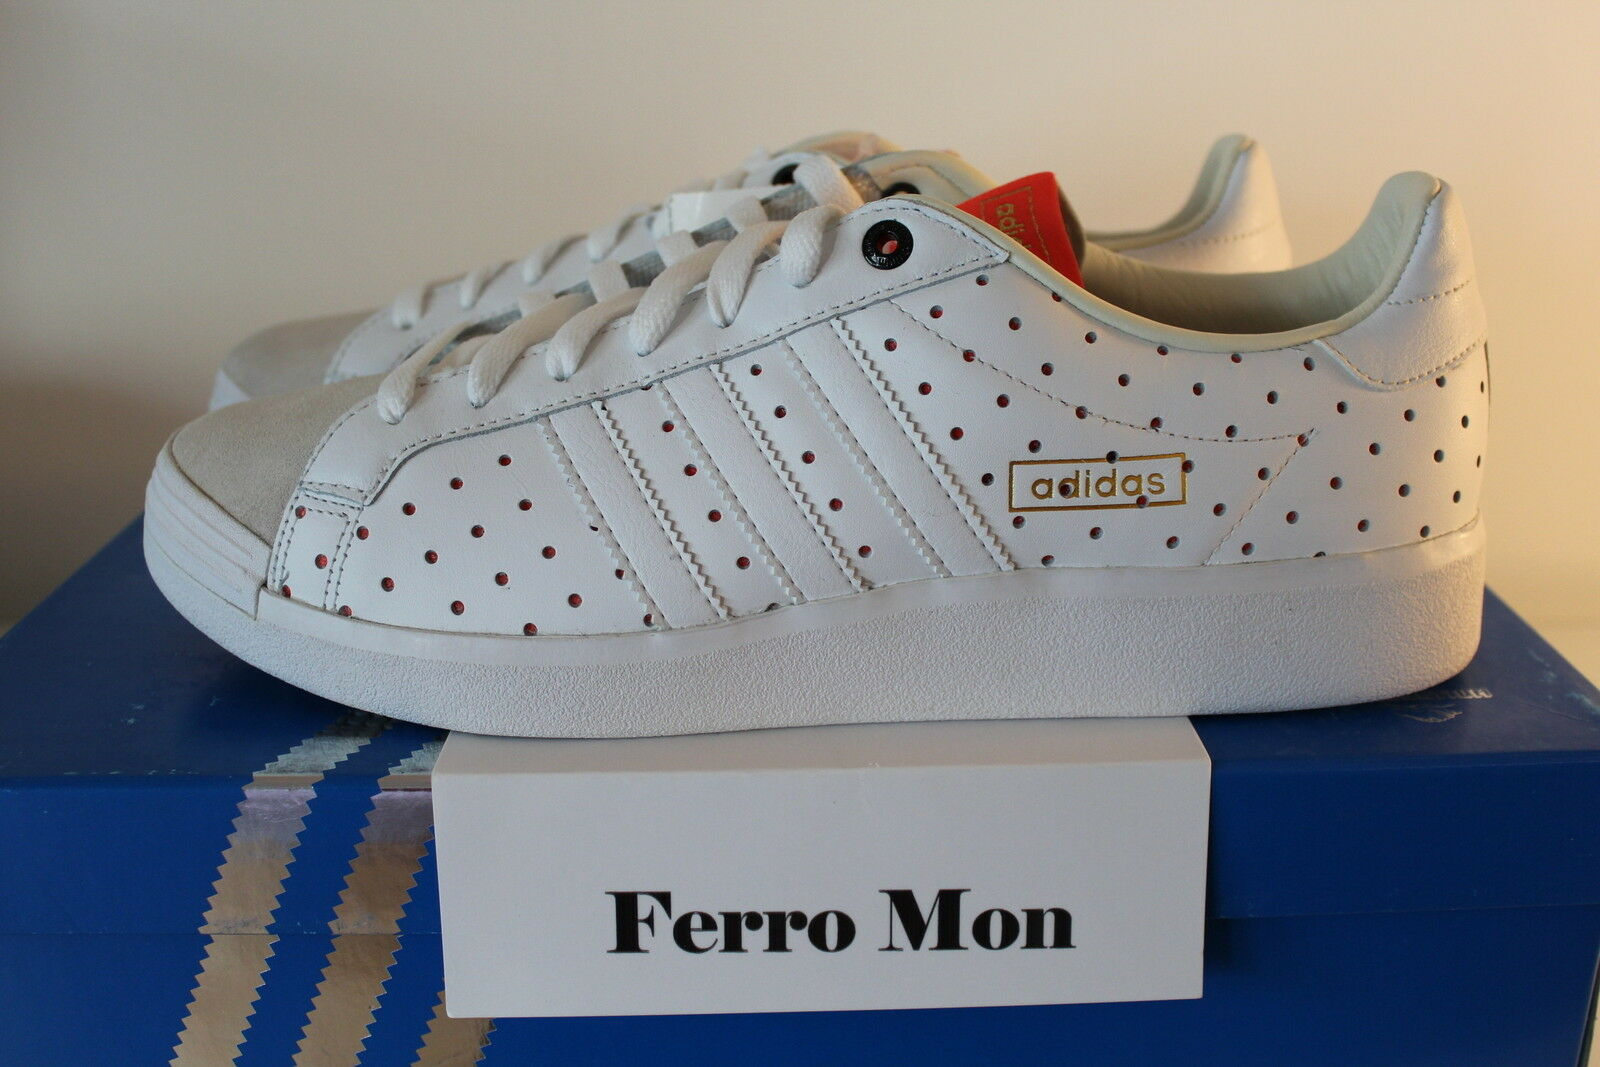 ♦DS ♦DS ♦DS 2007 Adidas Consortium Tennis ADV 1 380 BNIB, Stockholm, Berlin, London♦ ad086a